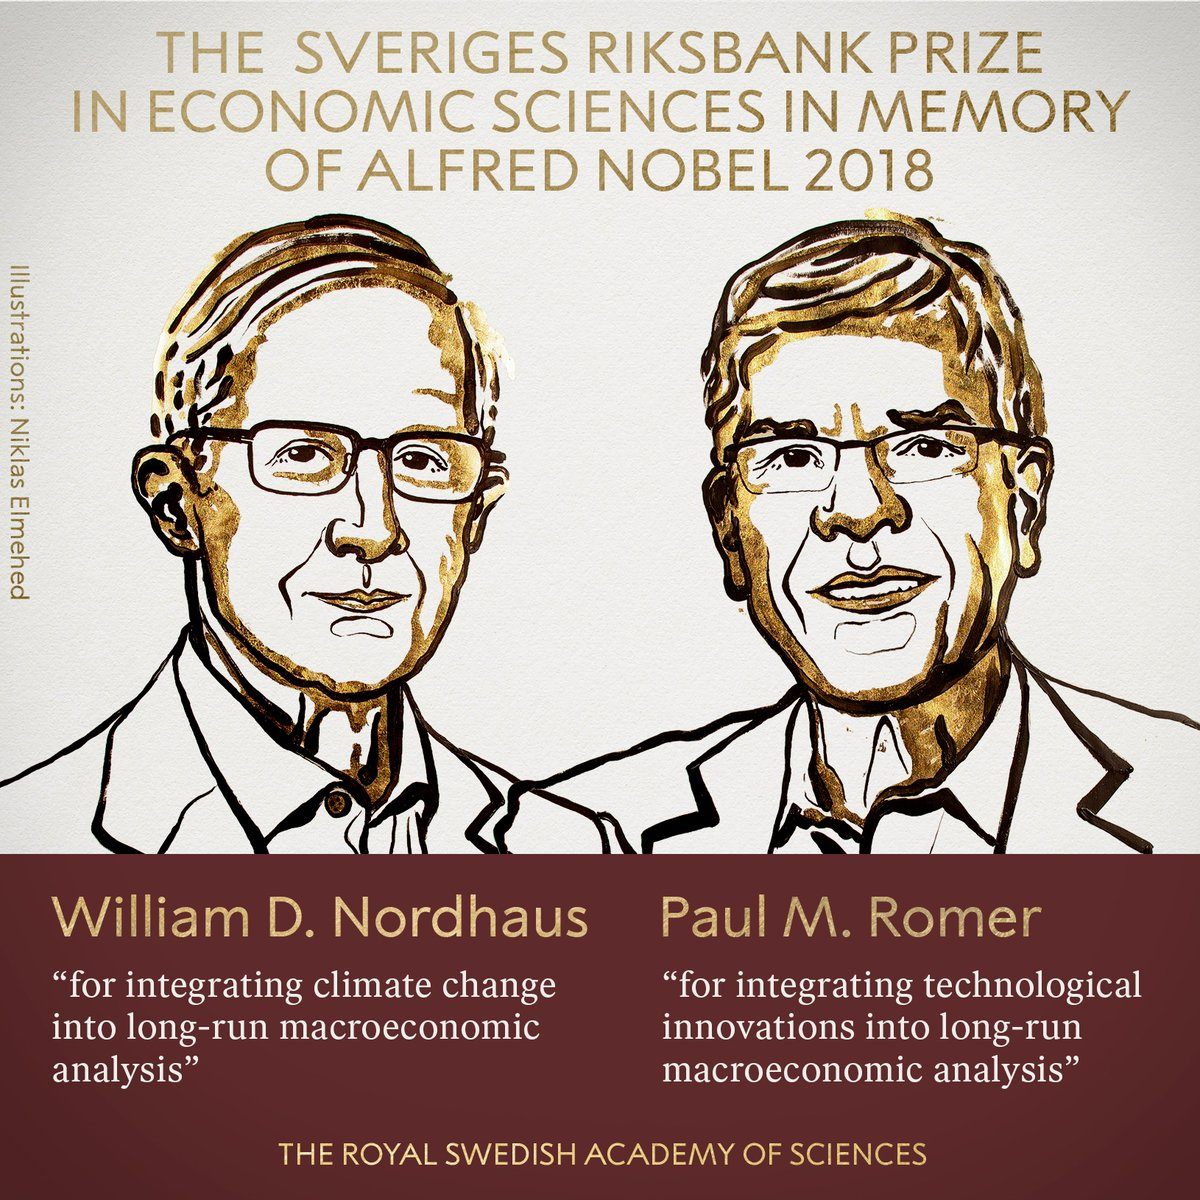 312534-premio-nobel-de-economia-william-d-nordhaus-y-paul-m-romer-son-los-ganadores-del-2018